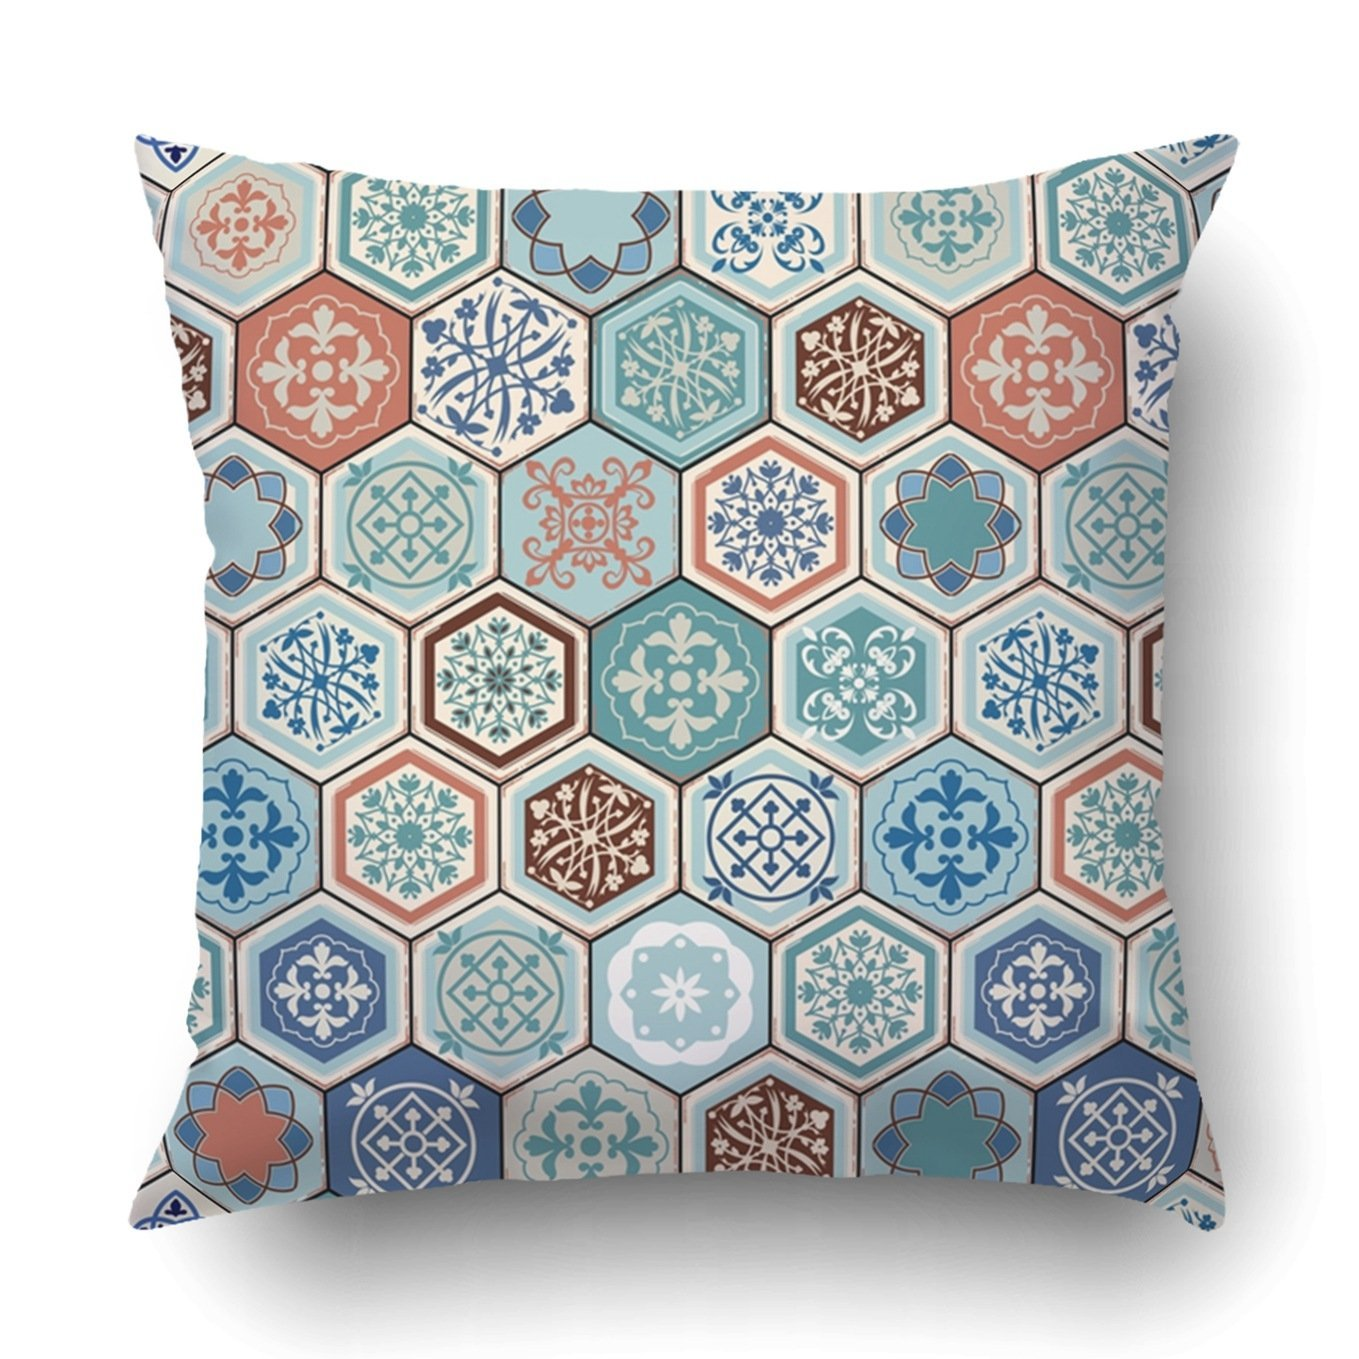 Emvency Decorative Throw Pillow Cover Case for Bedroom Couch Sofa Home Decor Oriental pattern Realistic Vintage Moroccan Portuguese hexagonal tiles Patchwork Square 18x18 Inches Moroccan